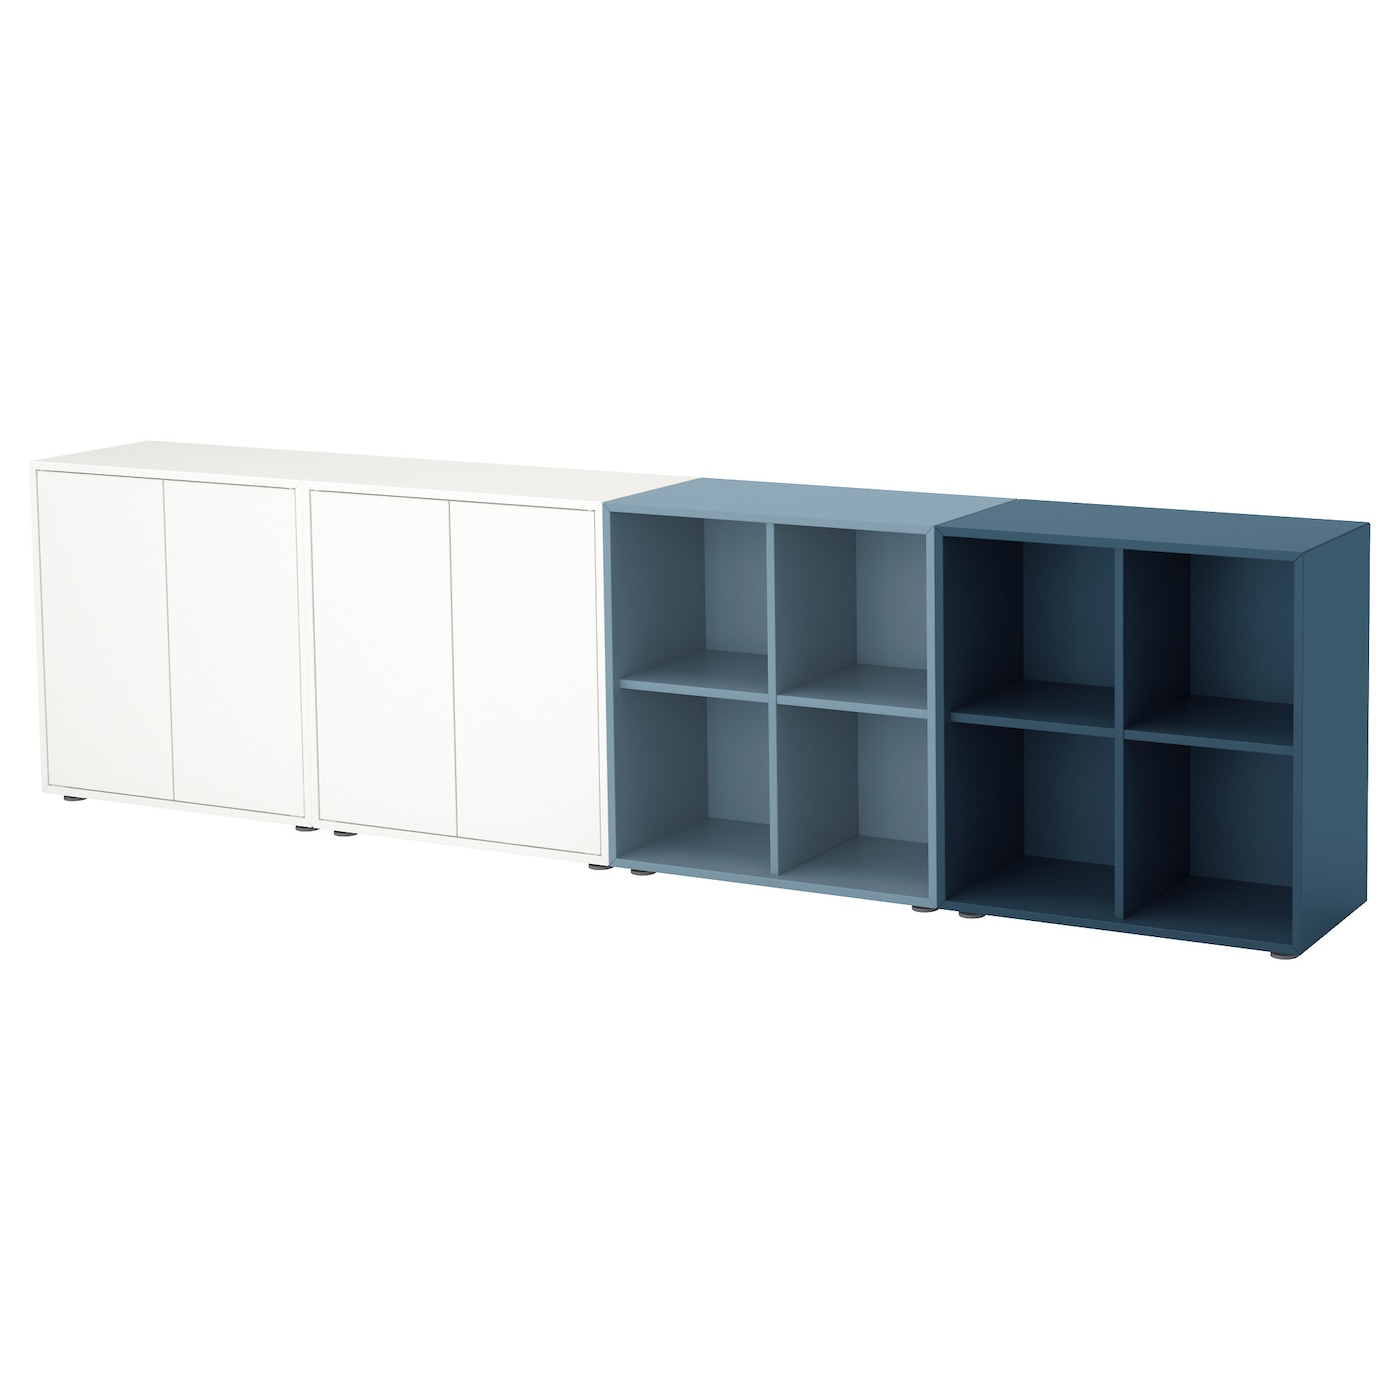 eket cabinet combination with feet white light blue dark. Black Bedroom Furniture Sets. Home Design Ideas